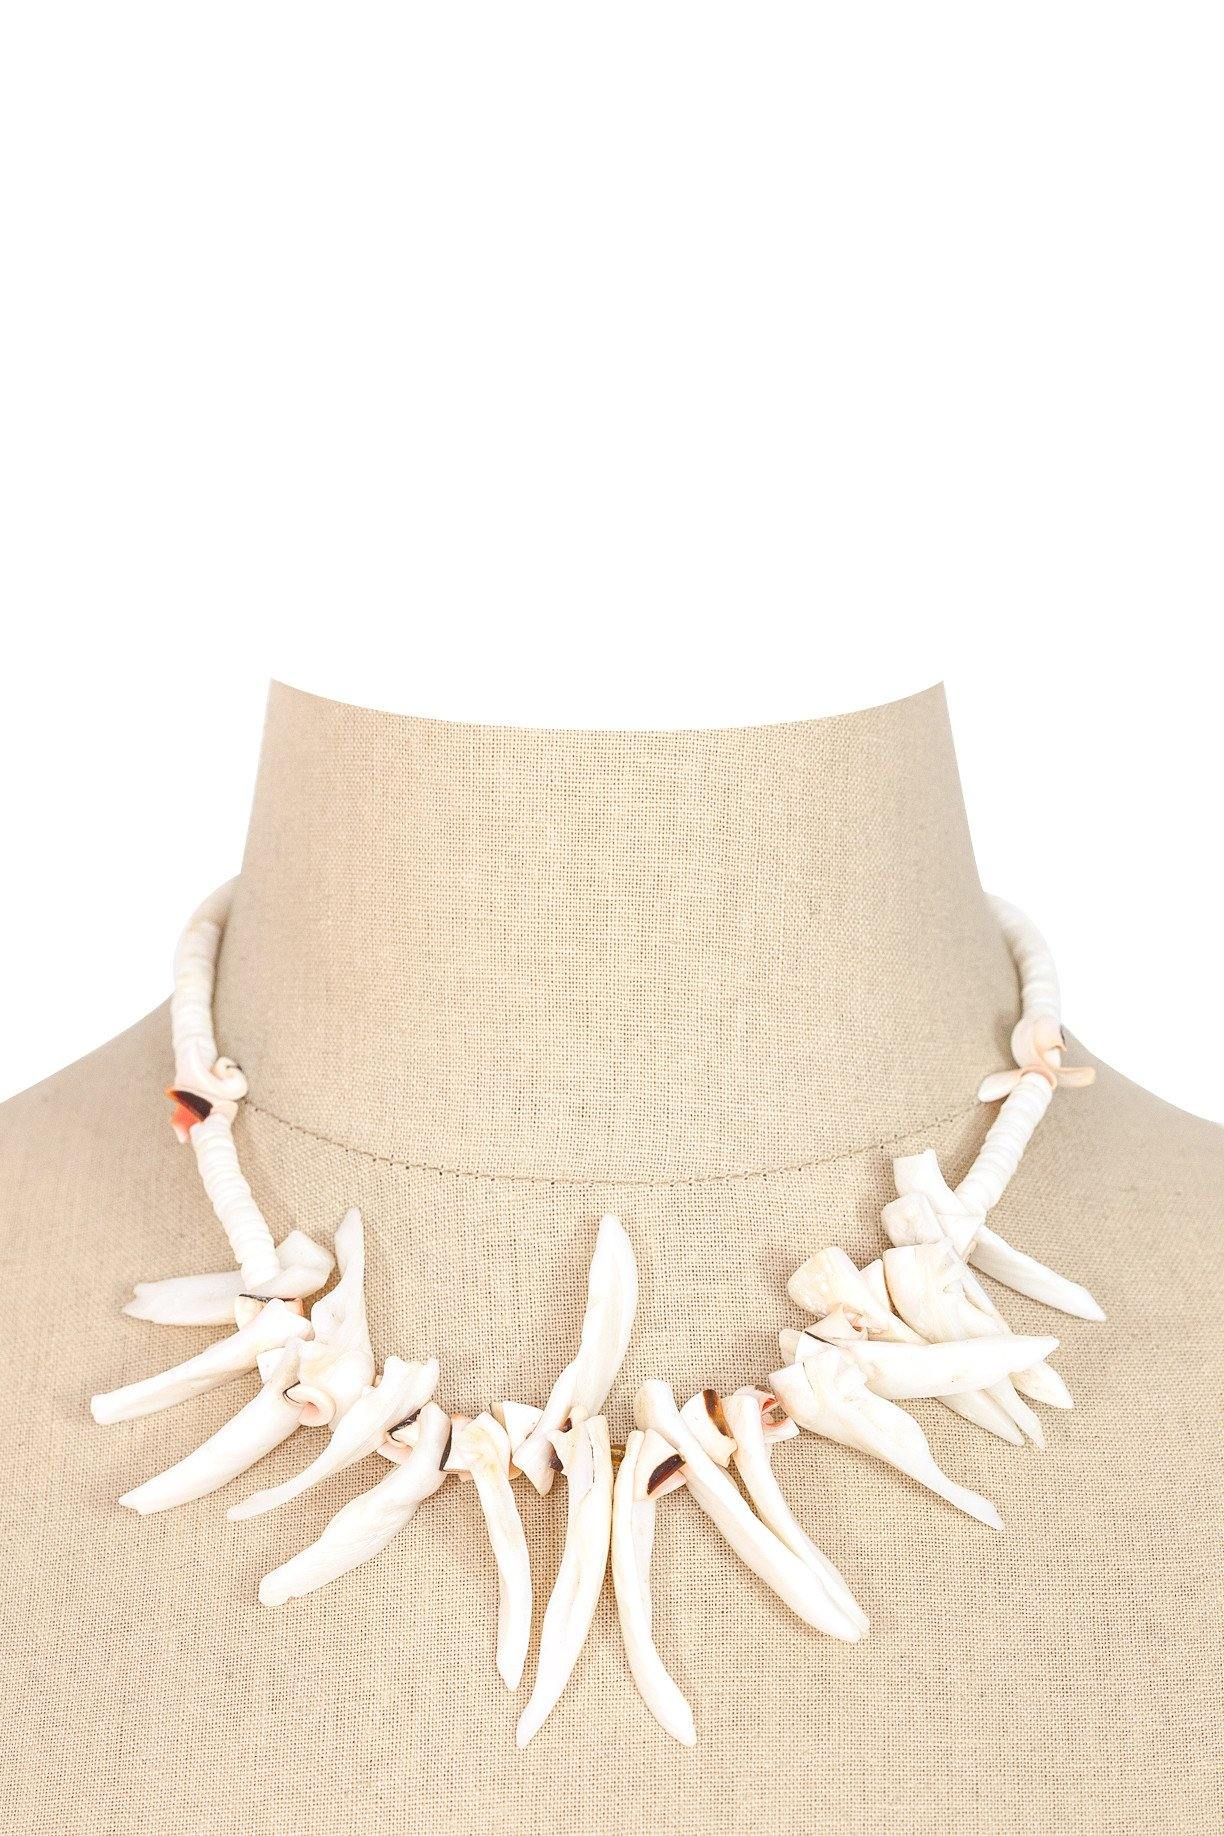 50's__Vintage__Fringe Shell Necklace